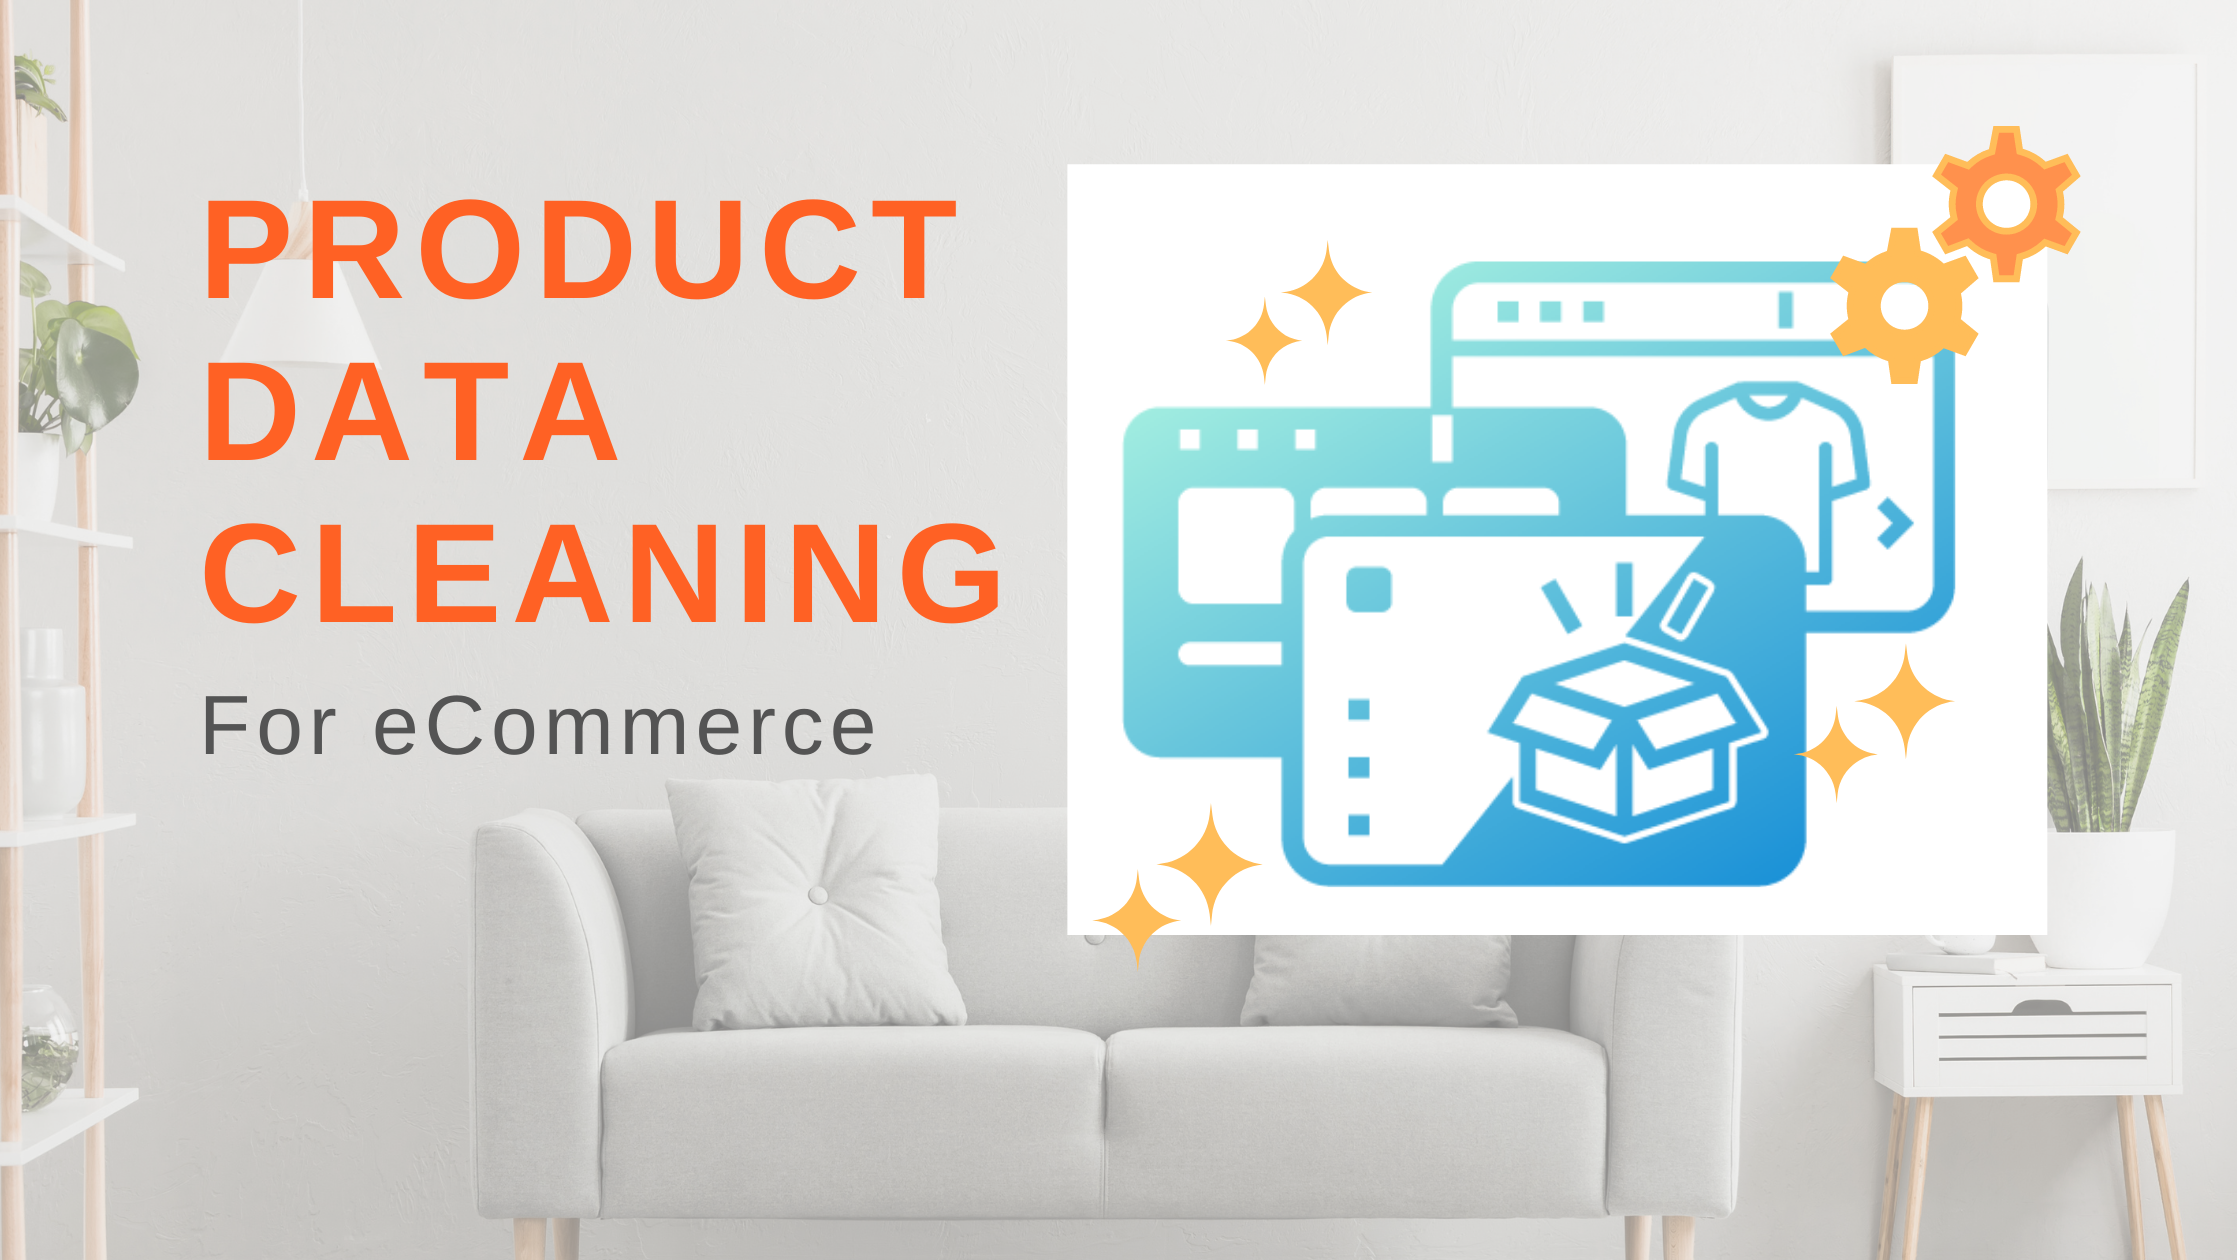 Product Data Cleaning for eCommerce